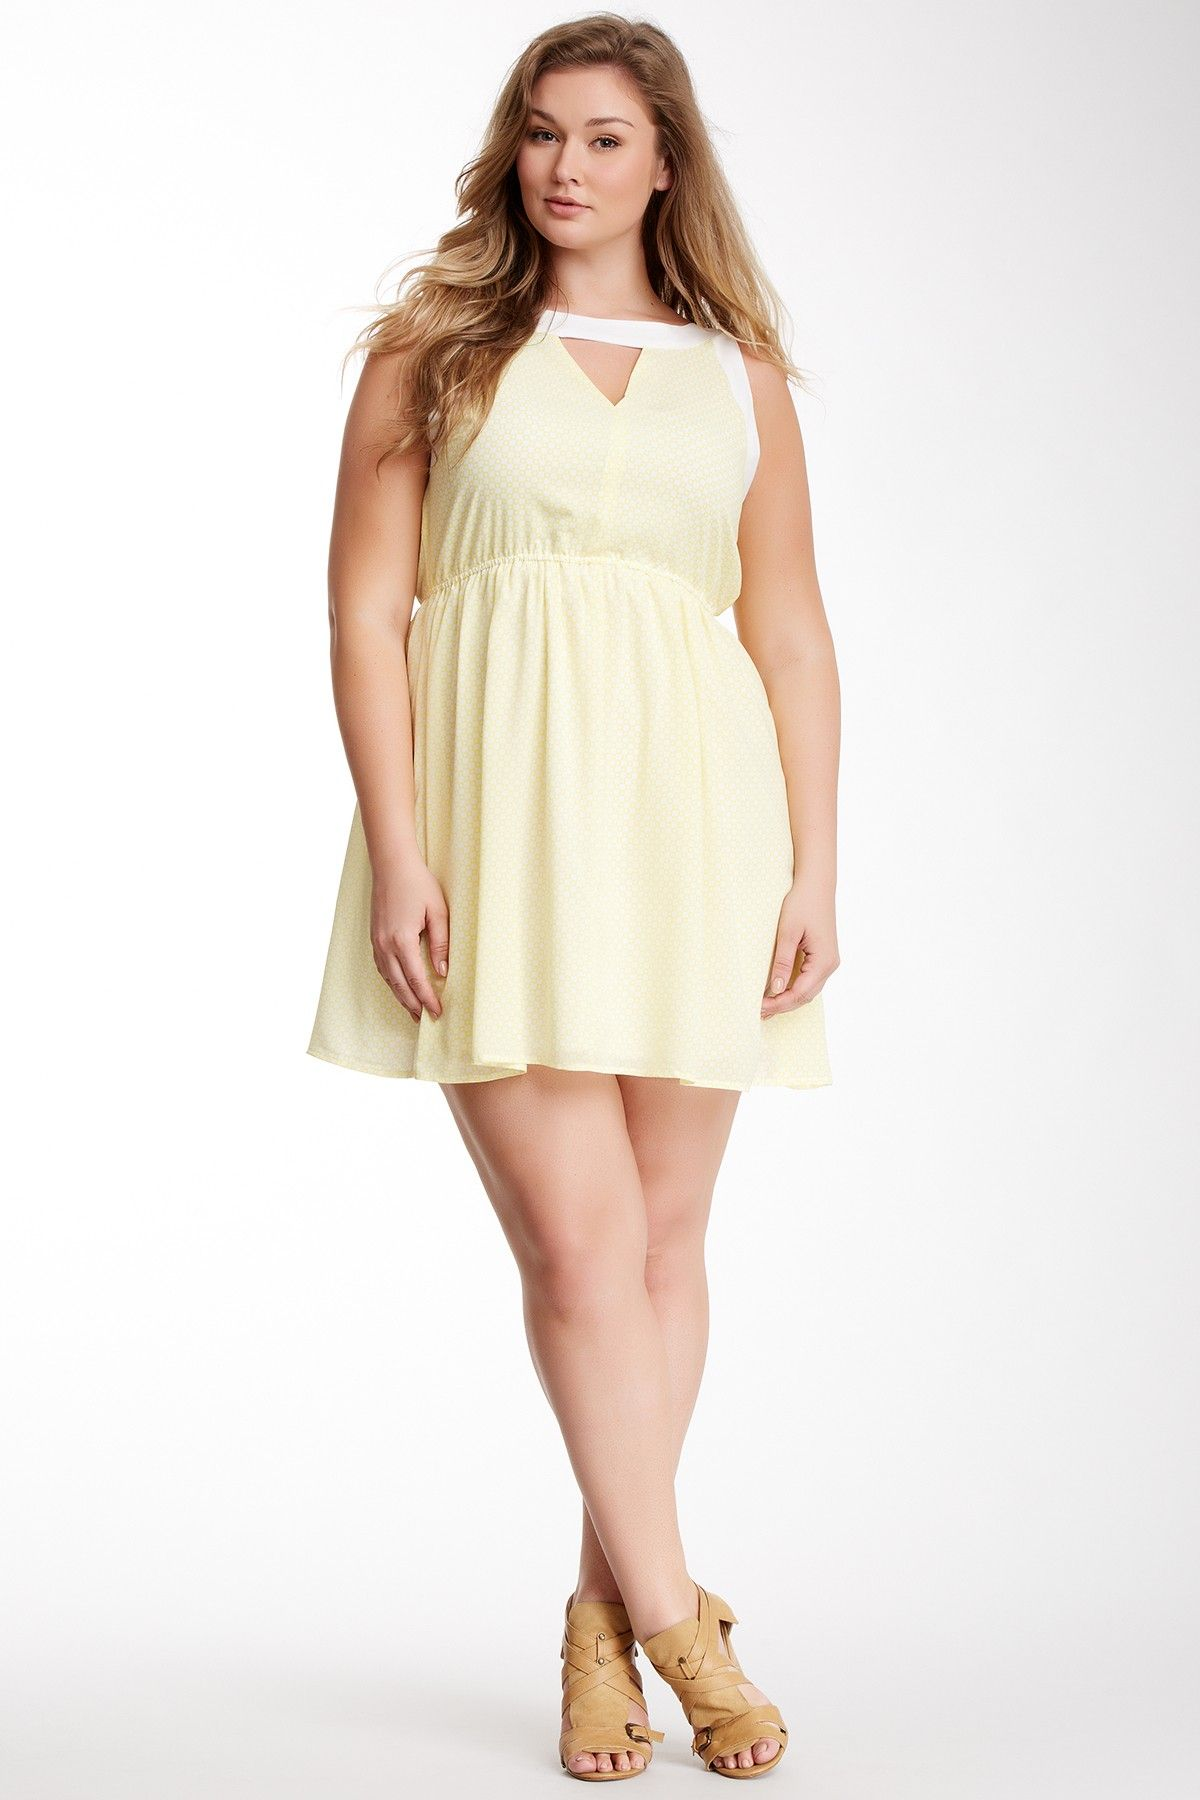 Curve Appeal, Hunter McGrady for Nordstrom Rack 40C bust, 35 ...